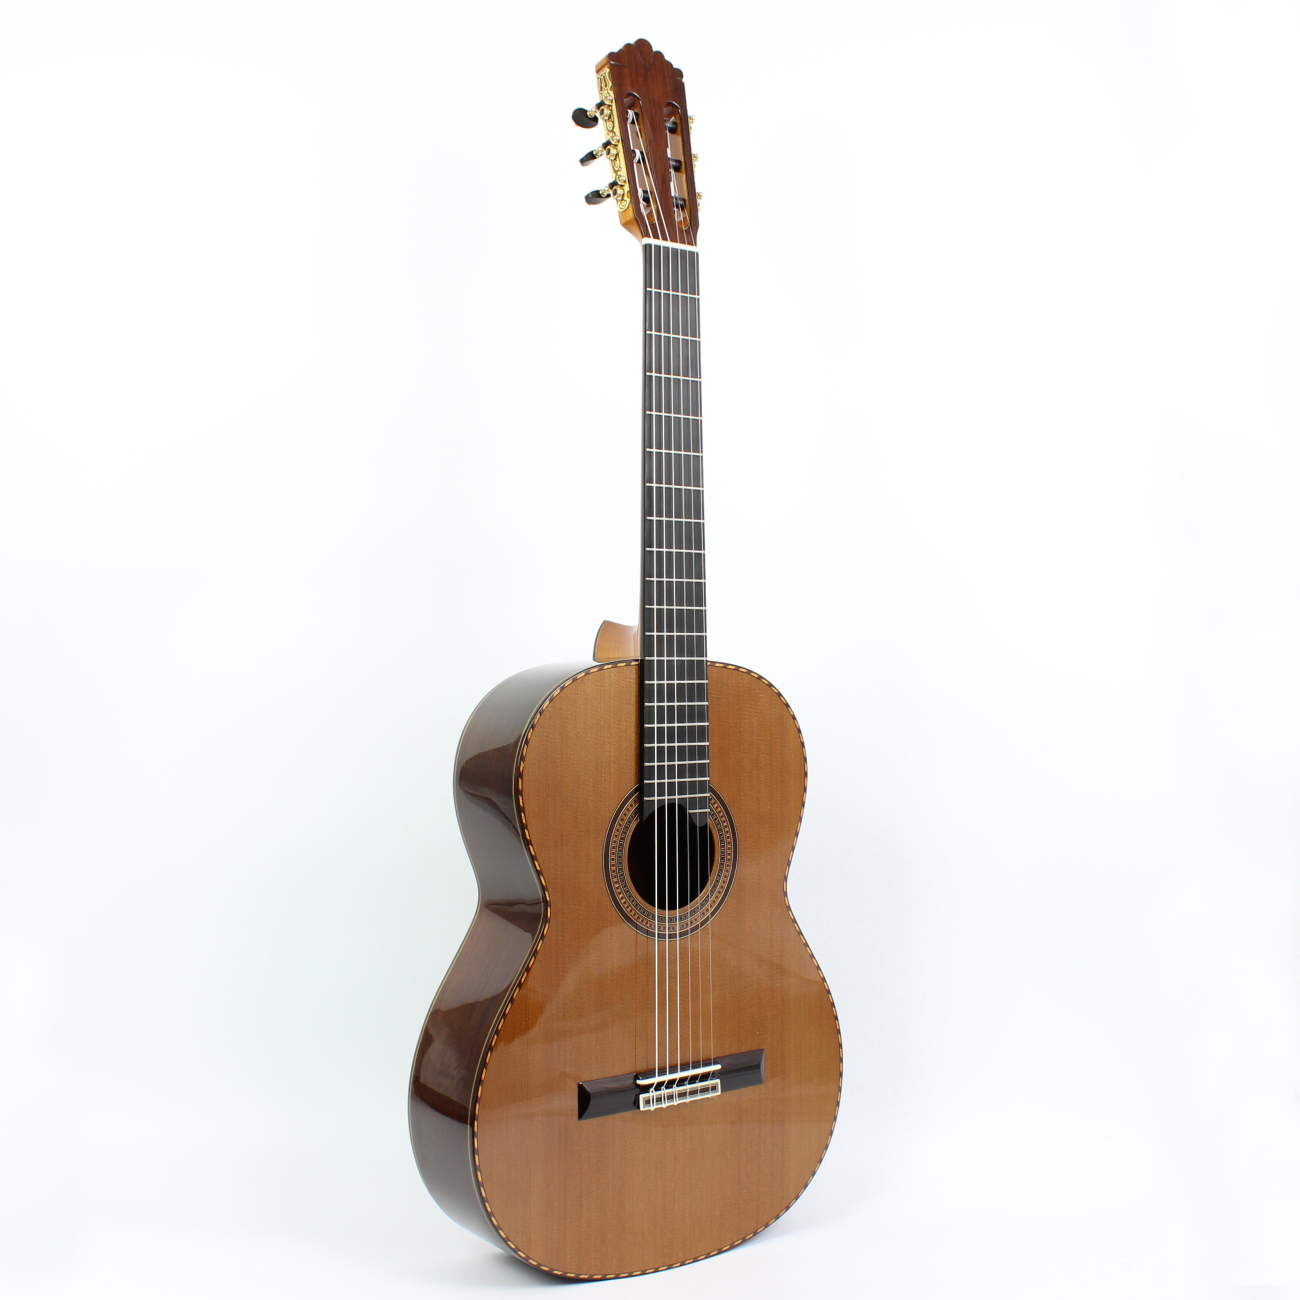 [Flagship store] santos song toos songtoos 090 madagascar rosewood classical guitar